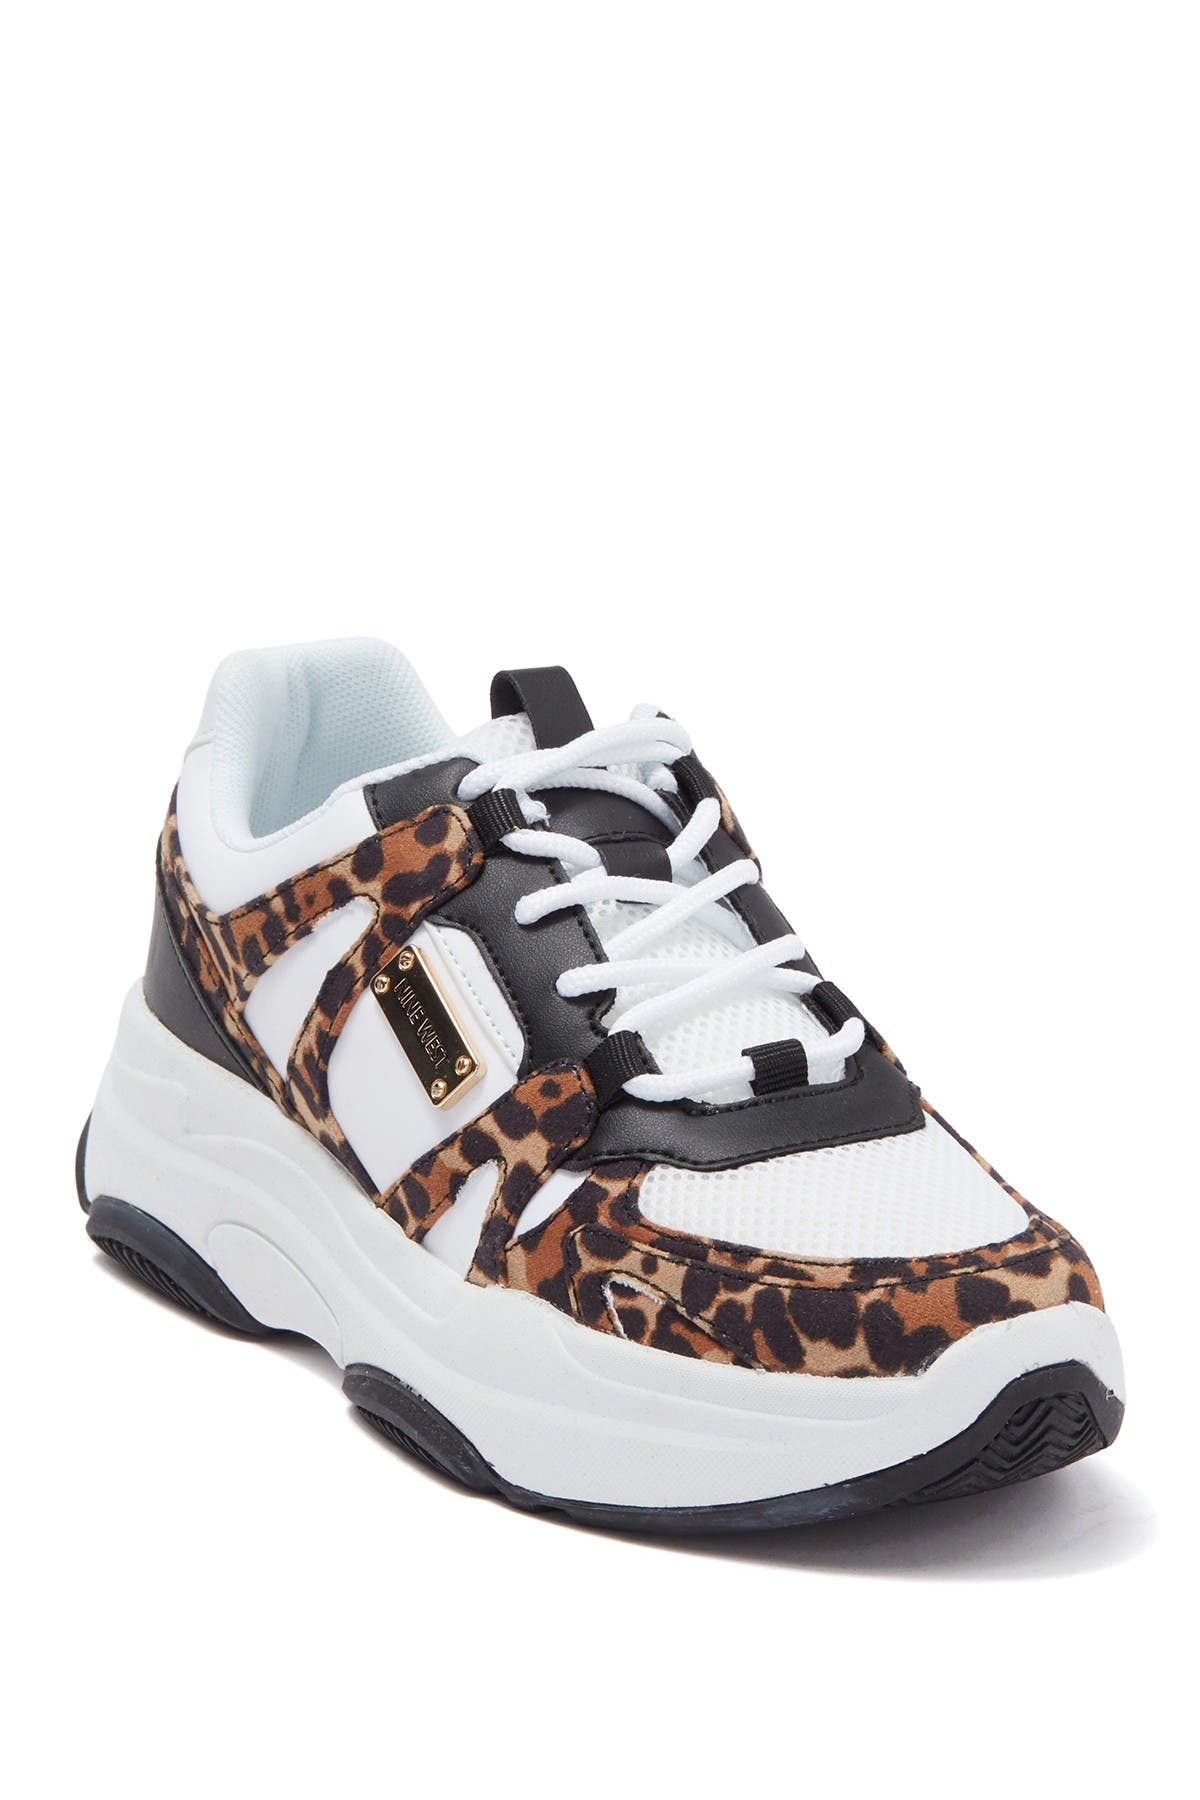 Image of Nine West Nema Sneaker